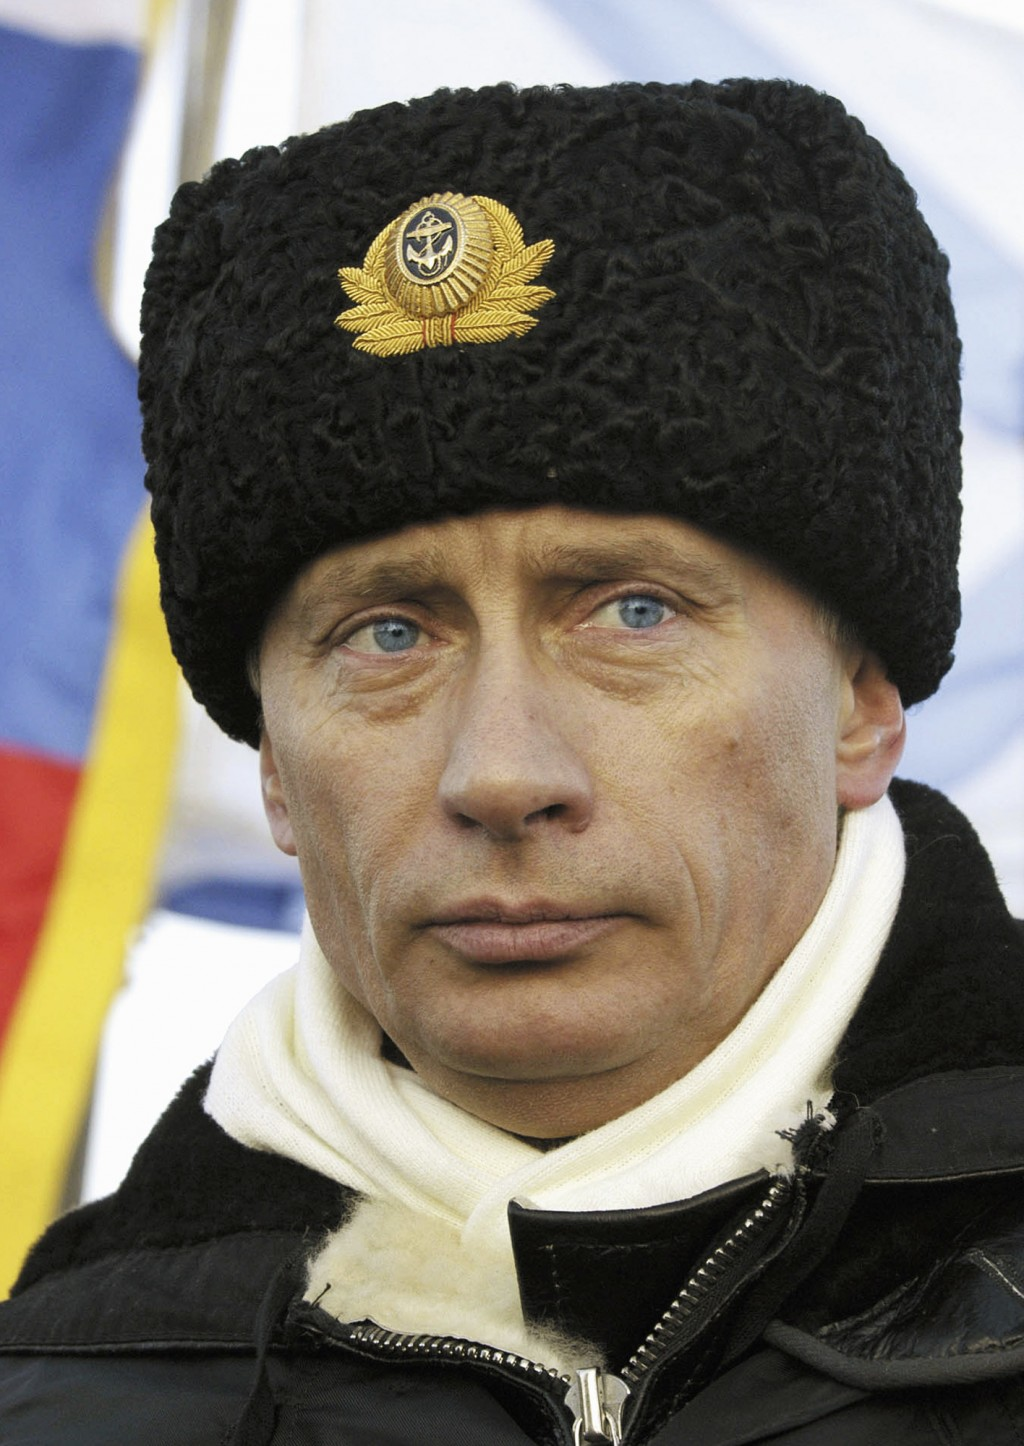 FILE- In this file photo taken on Tuesday, Feb. 17, 2004, Russian President Vladimir Putin watches a military exercise aboard the Arkhangelsk nuclear